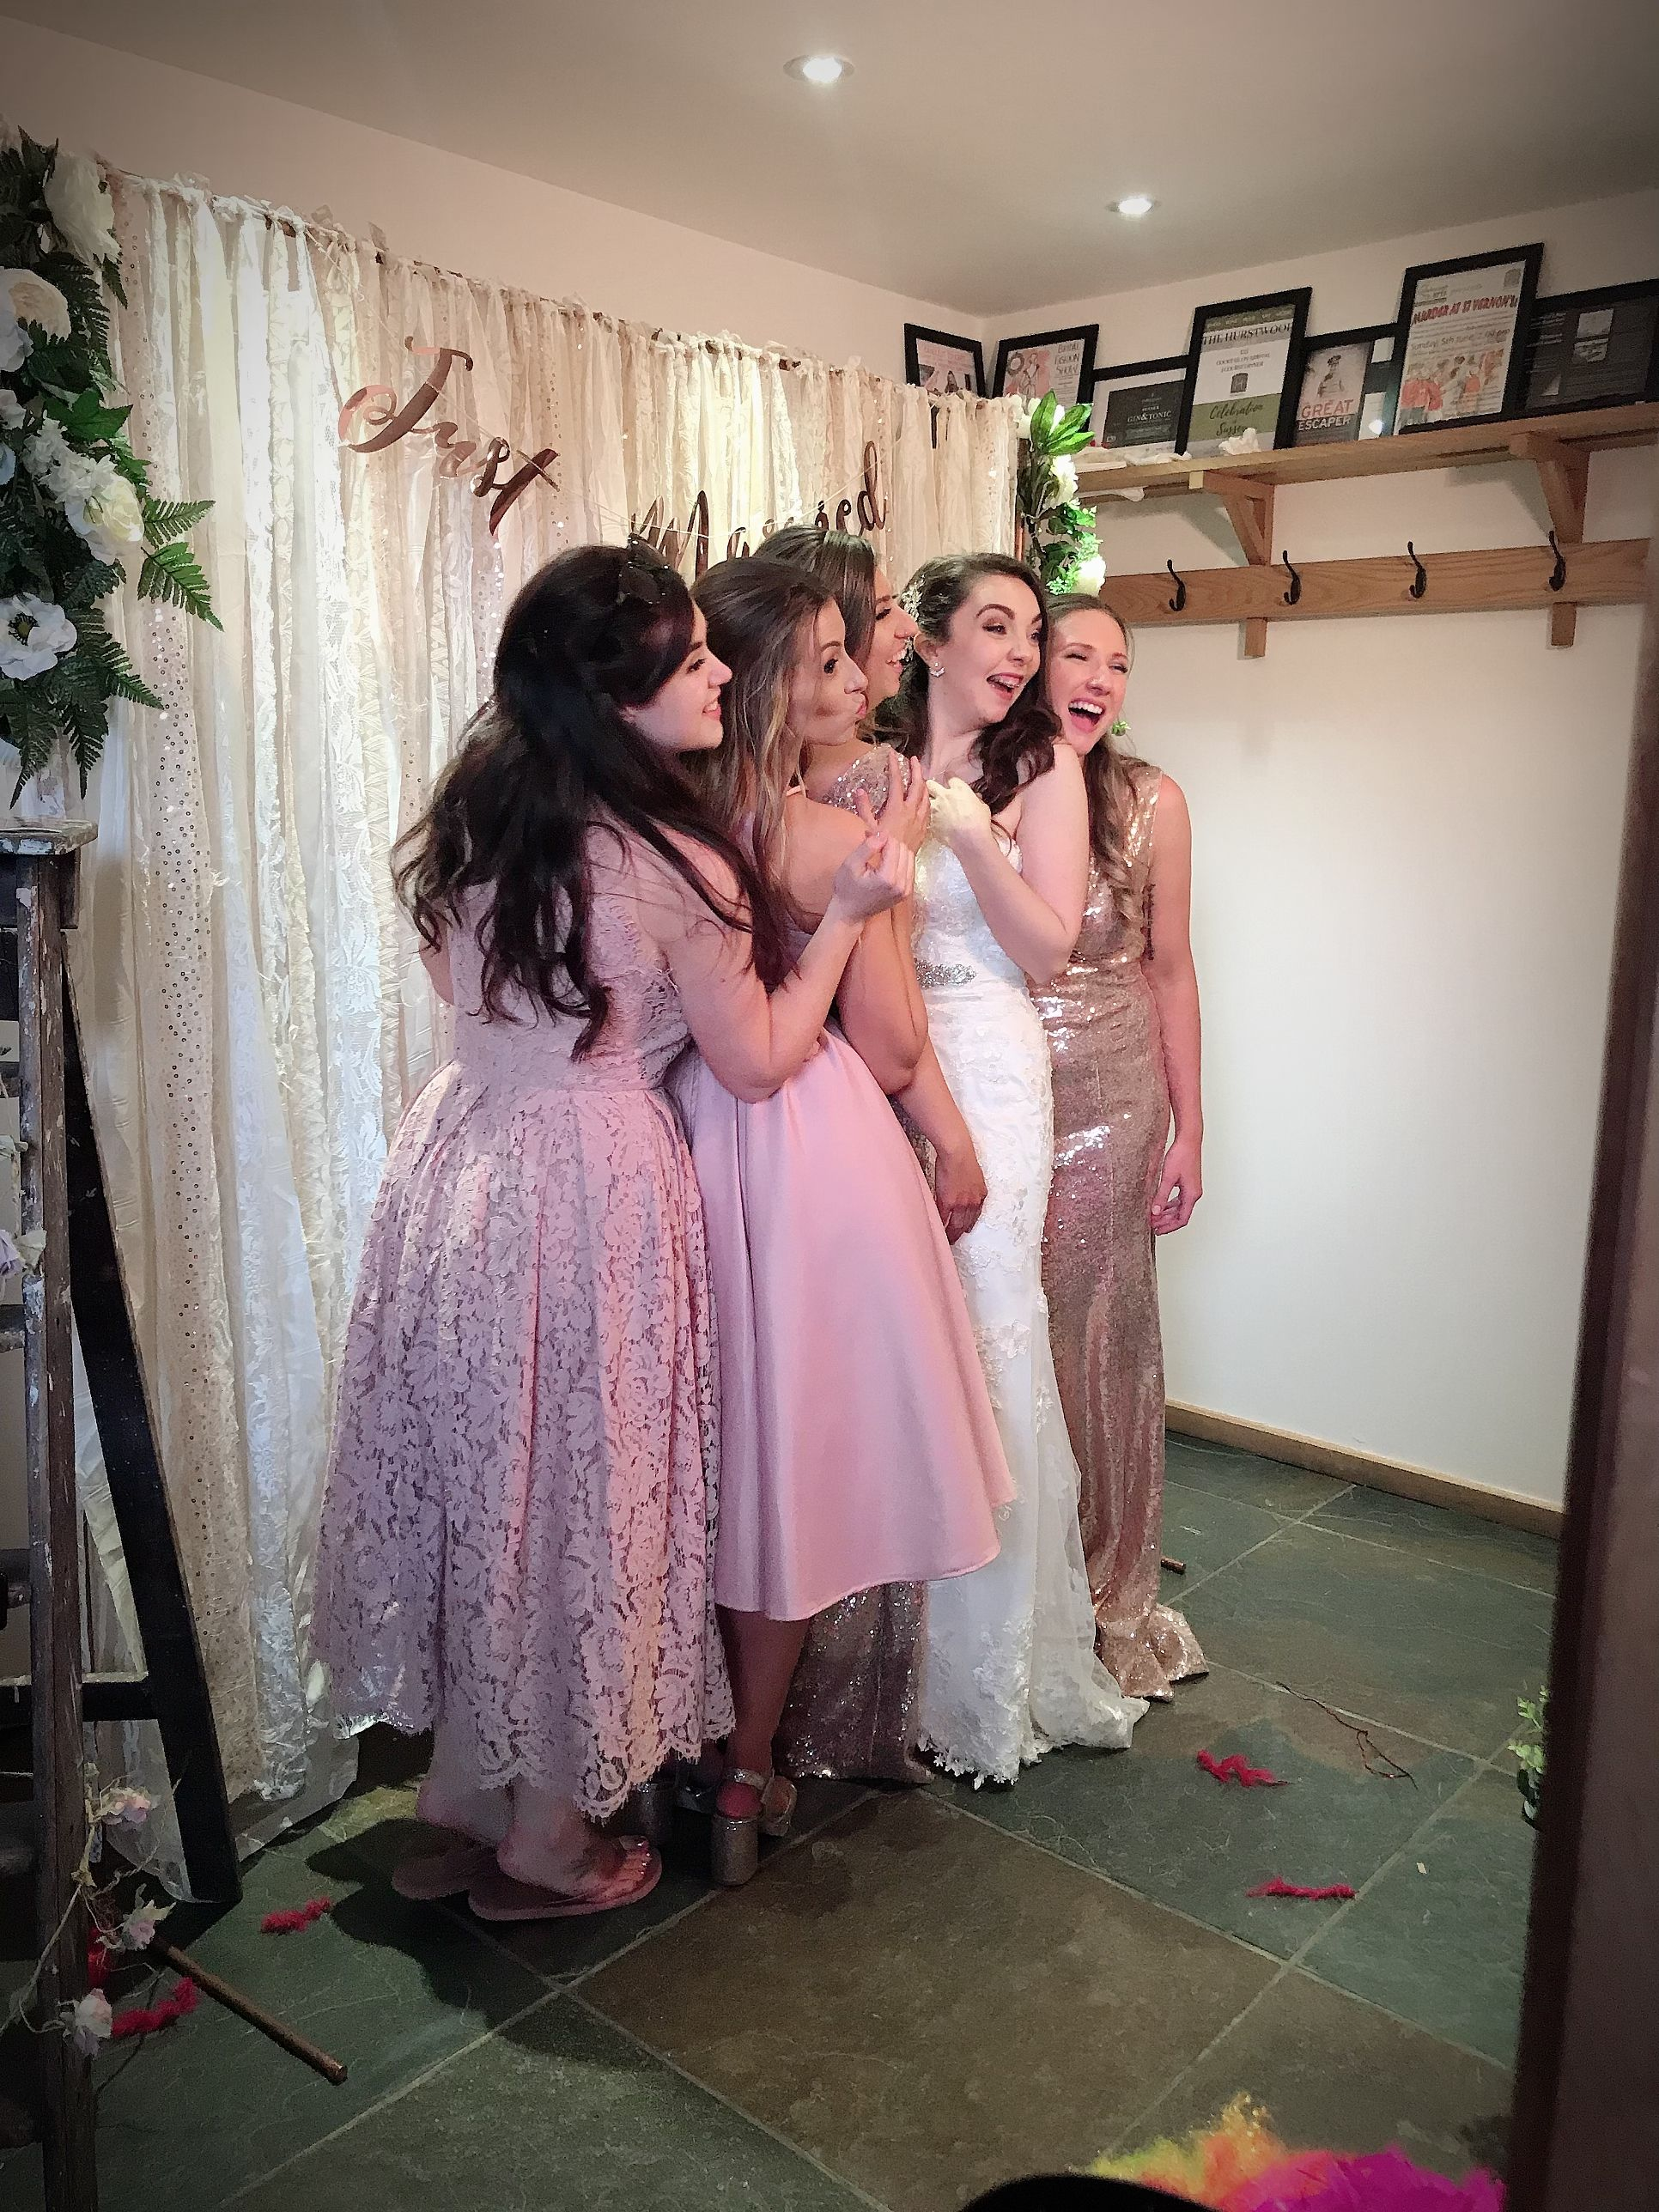 Our gorgeous bride and bridesmaids enjoying a cheeky snap in